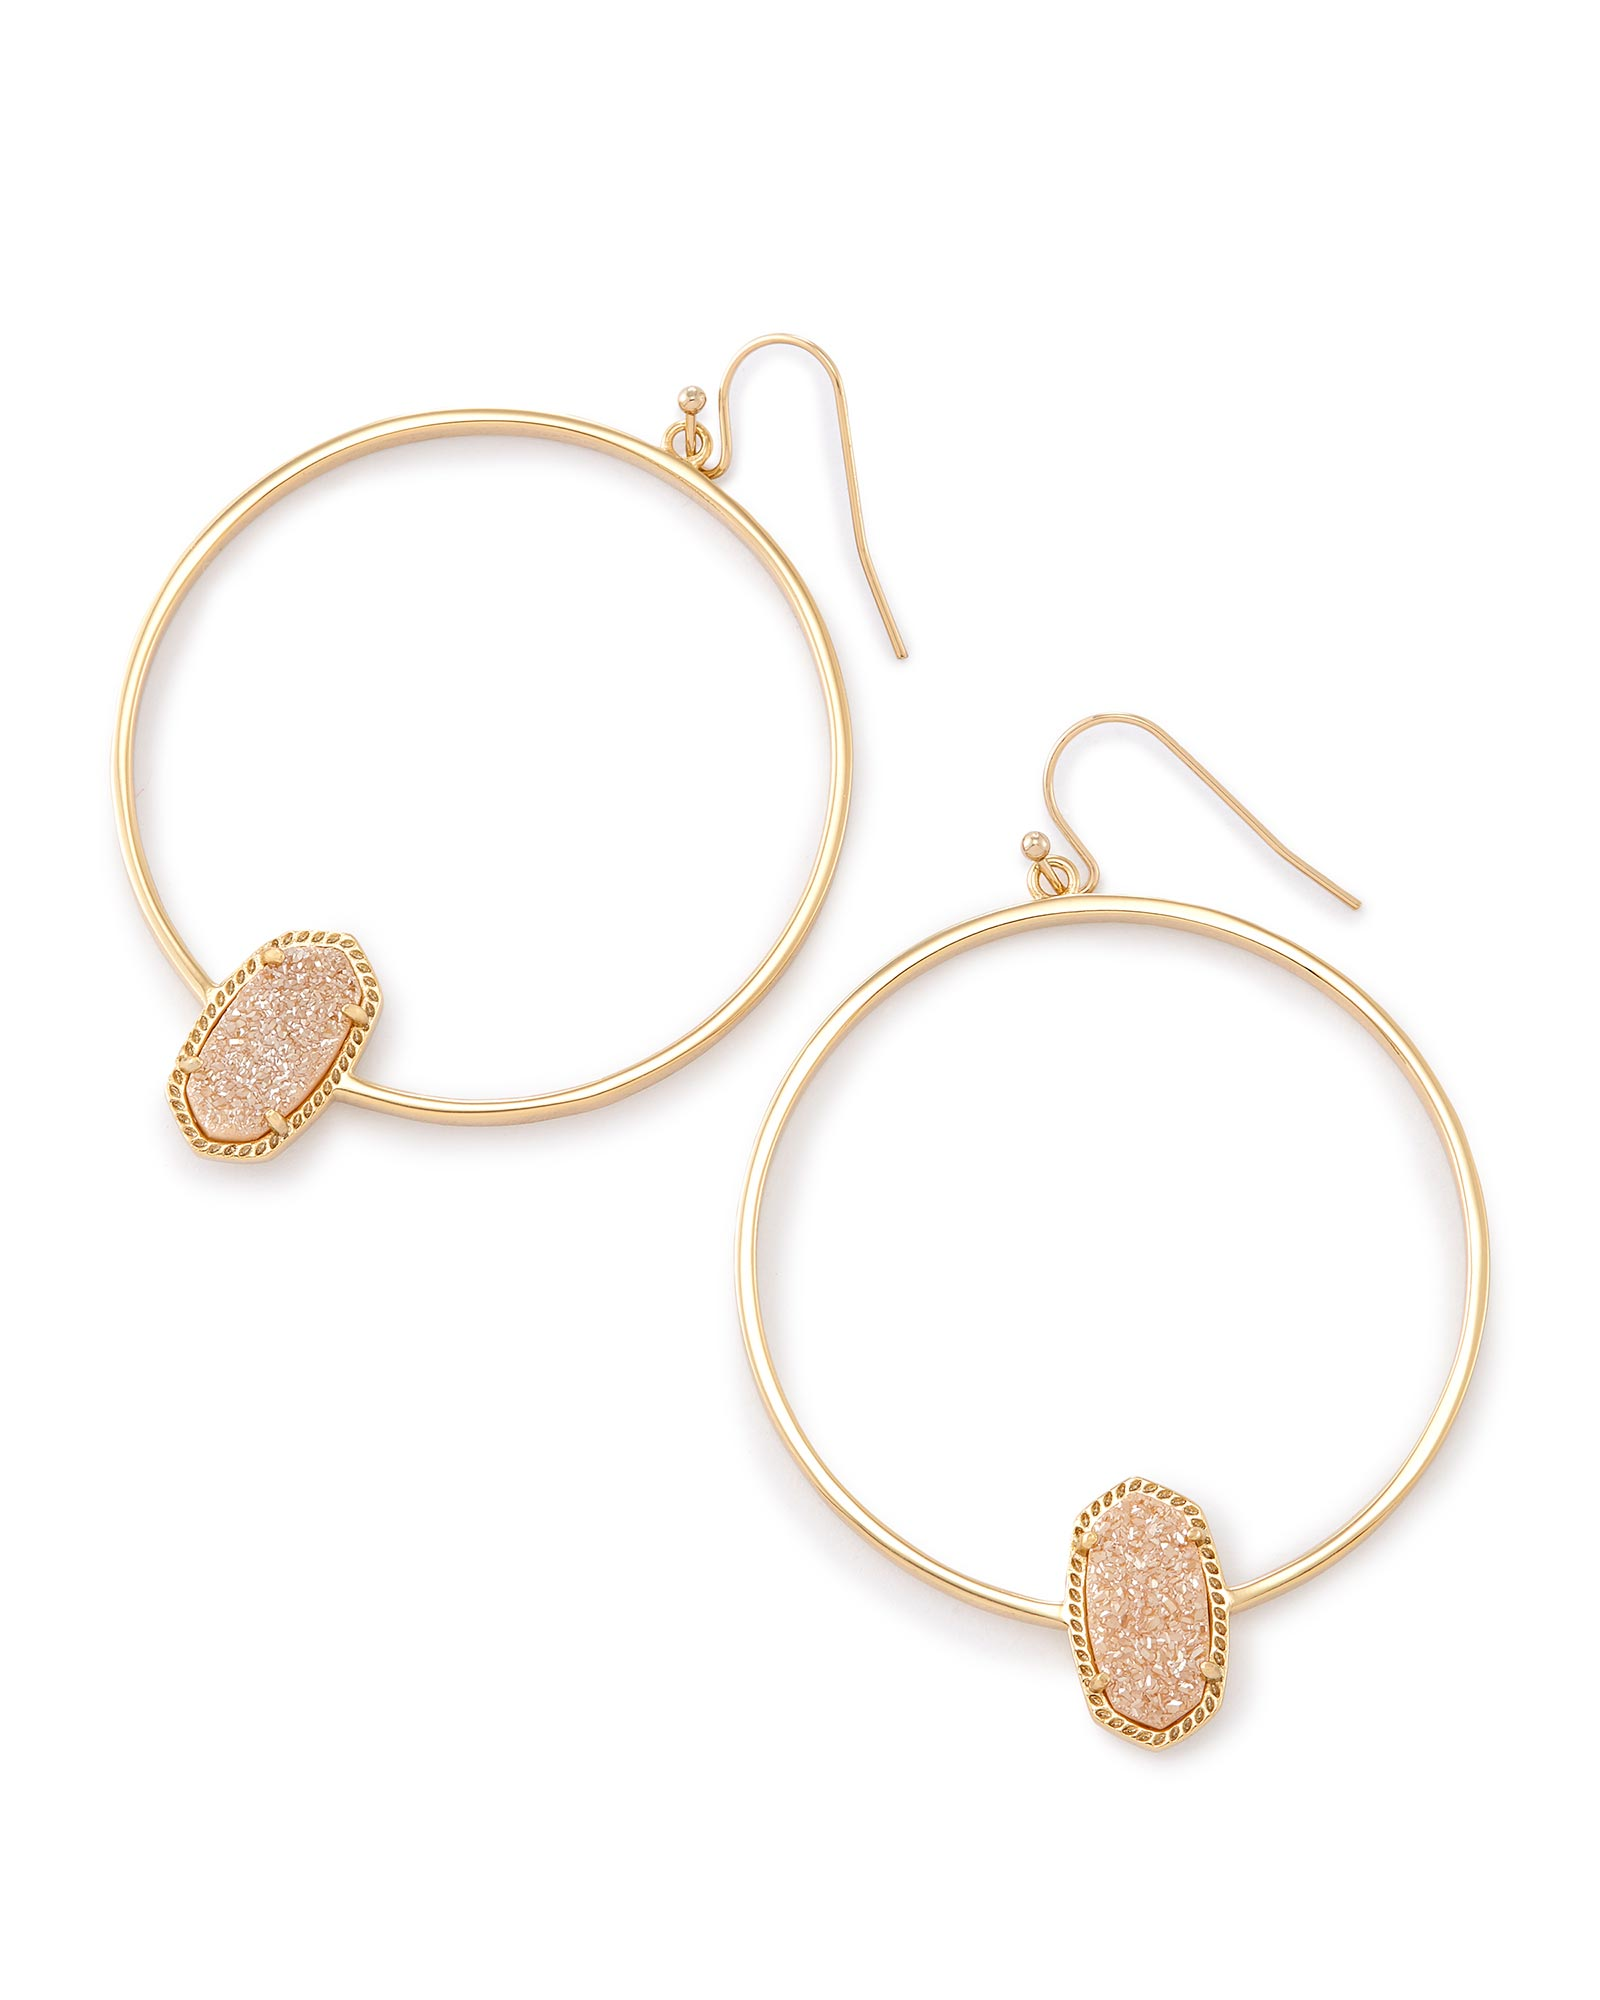 Elora Hoop Earrings in Sand Drusy